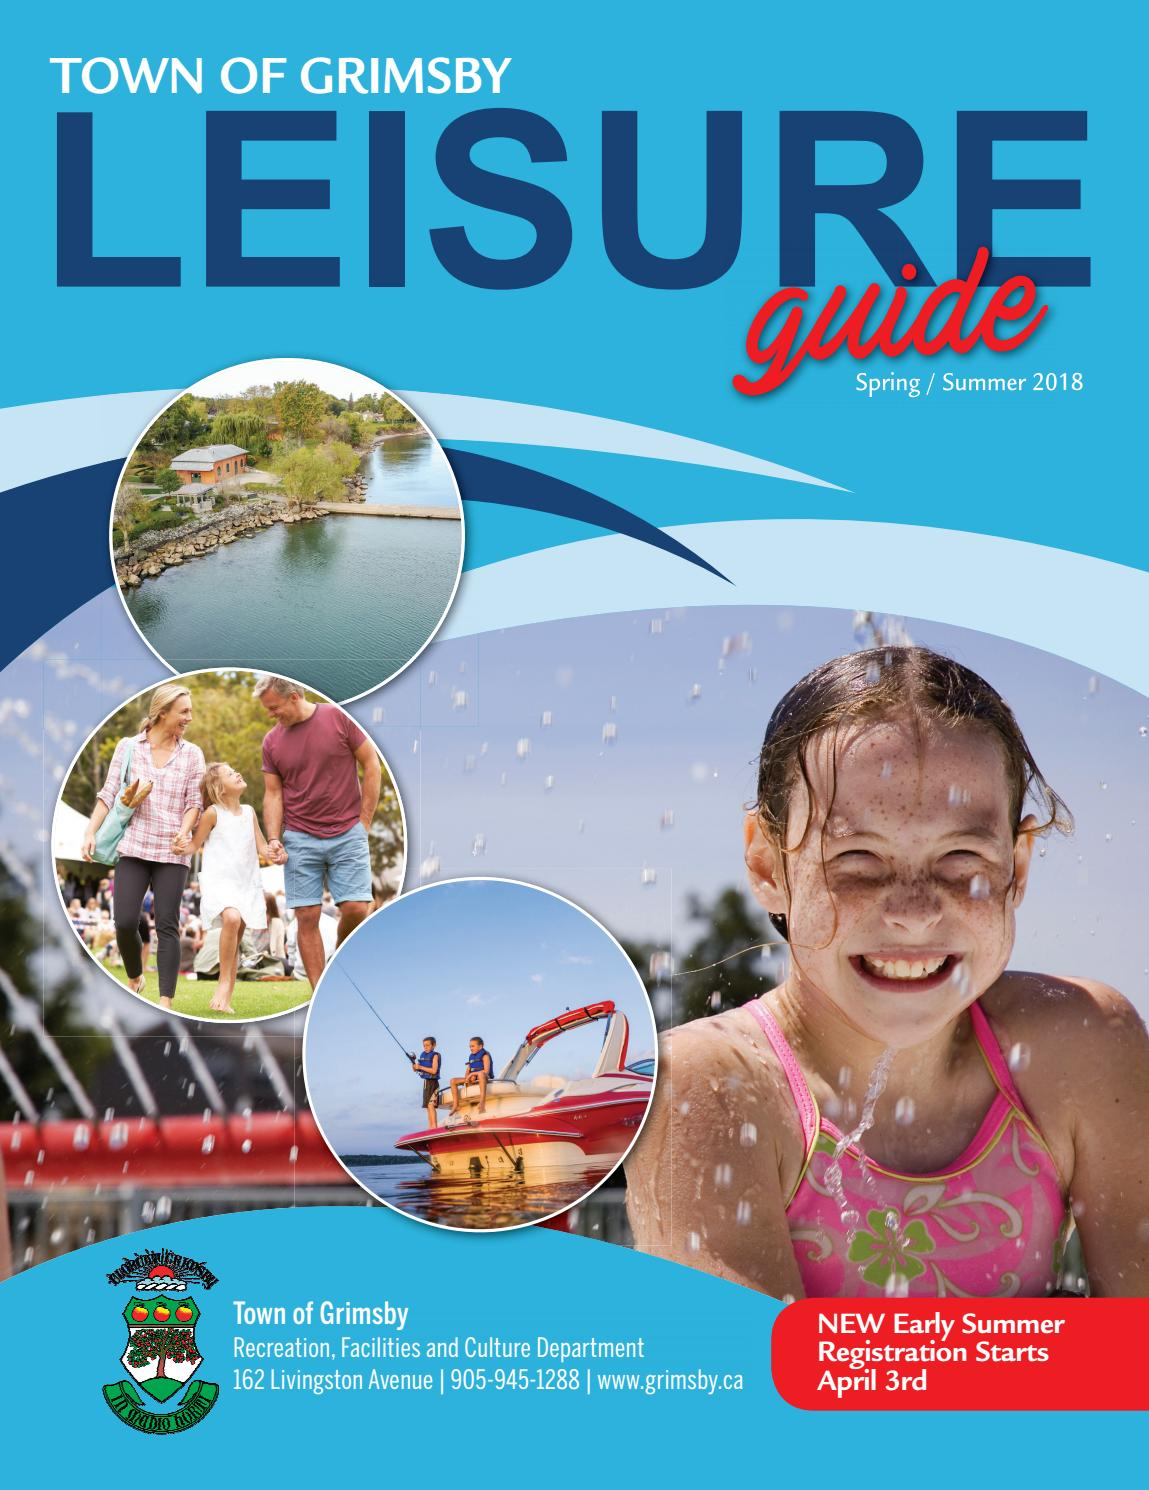 Town of Grimsby Spring/Summer 2018 Leisure Guide by Town of